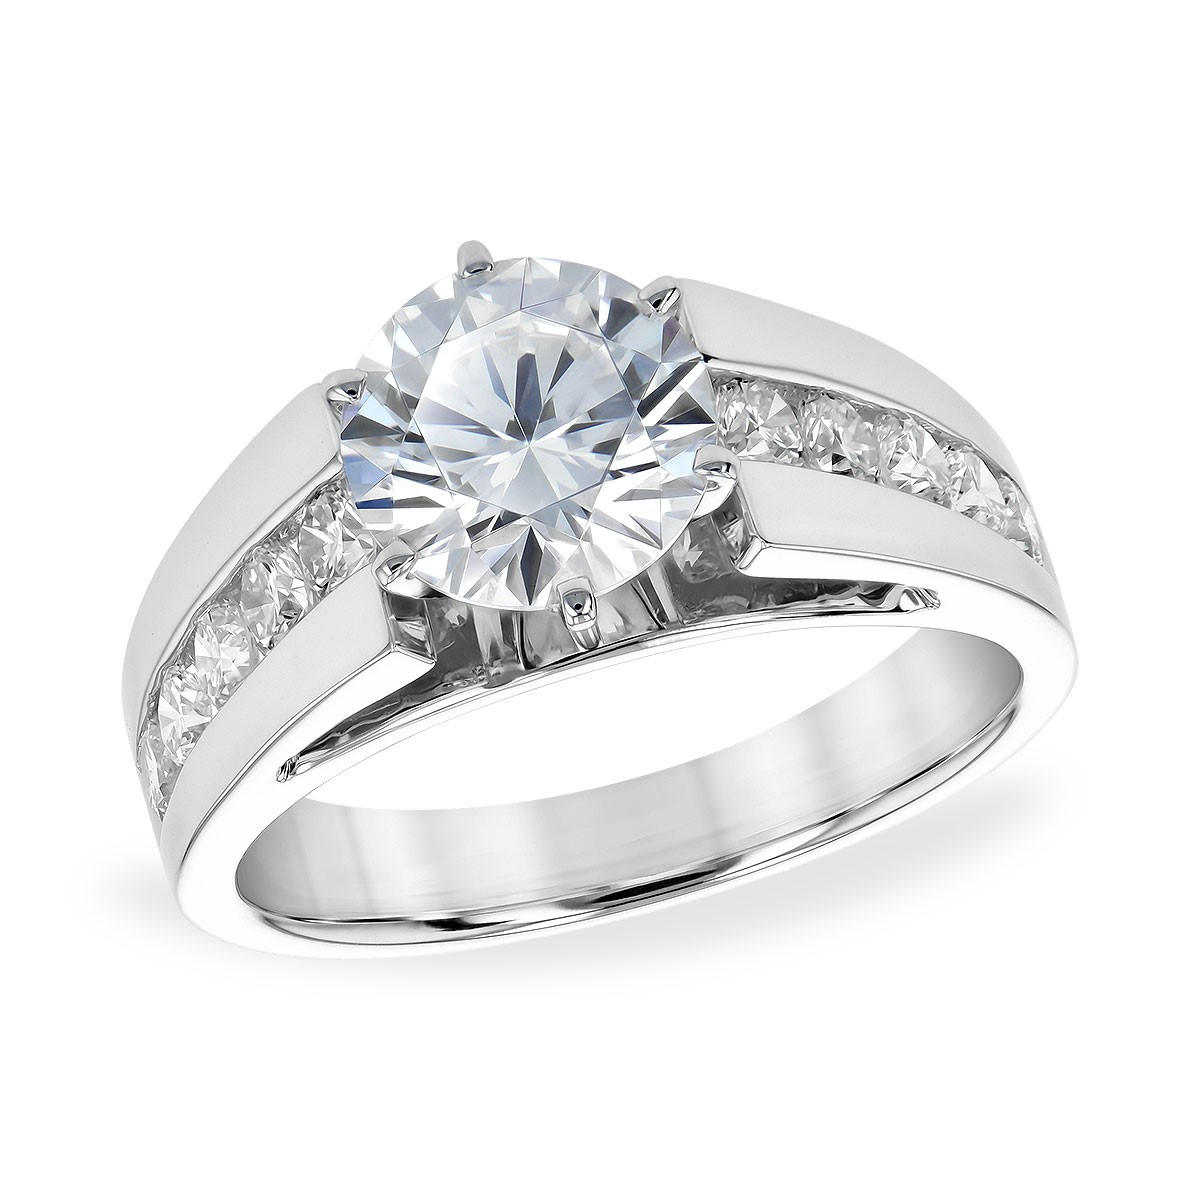 Modern Sleek Wide Band Engagement Ring by Allison Kaufman